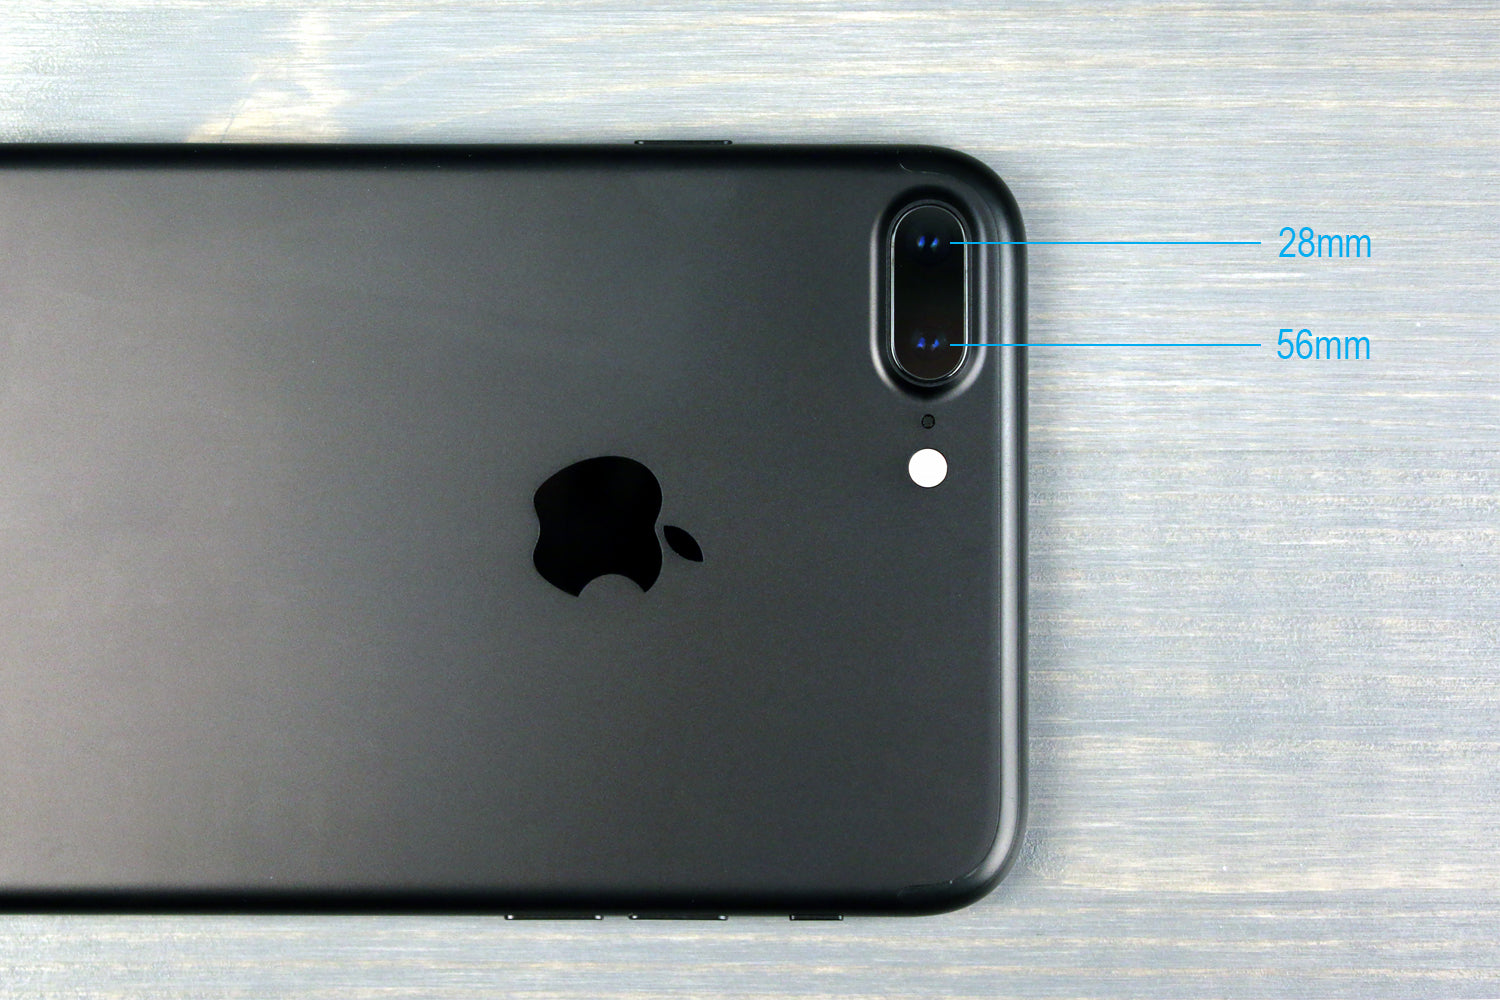 quality design 3f858 608be iPhone 7 and 7 Plus Camera Lens Position and Compatibility with ...